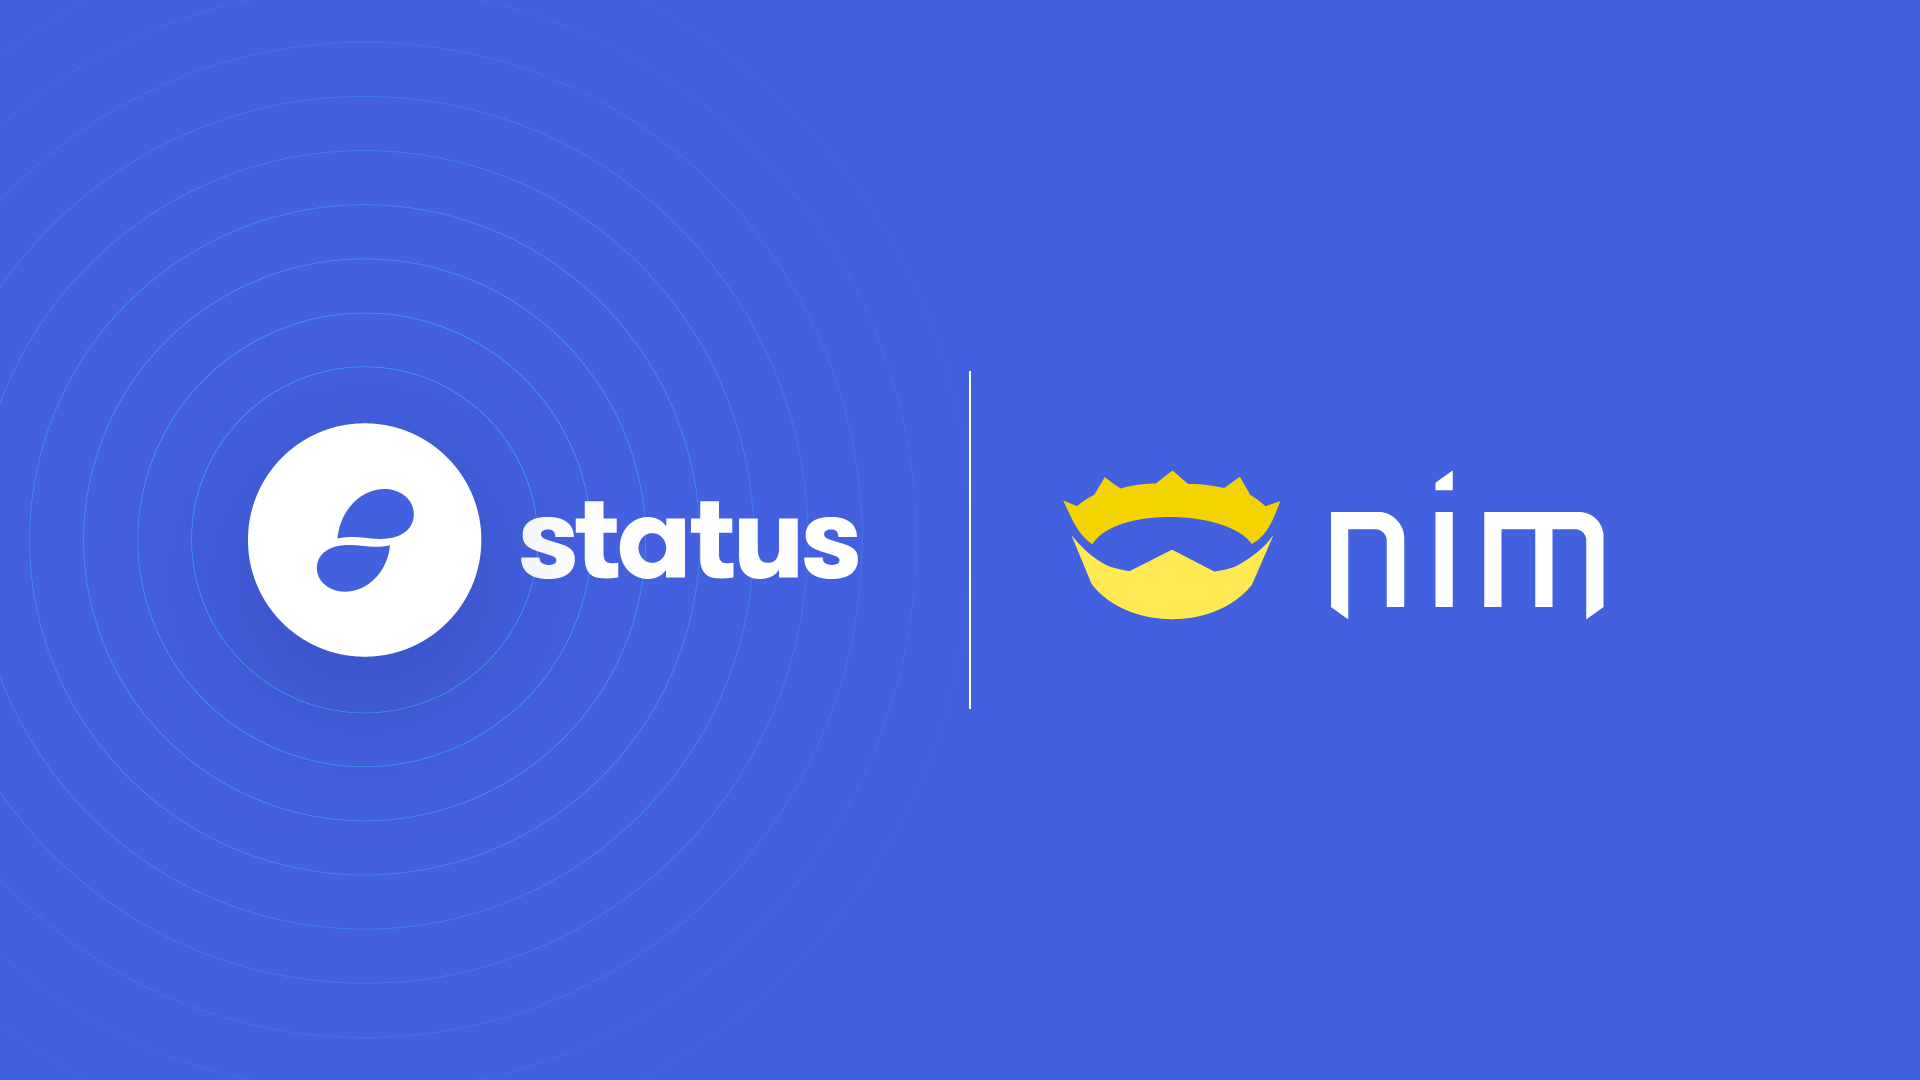 Status Partners with the team behind the programming language Nim